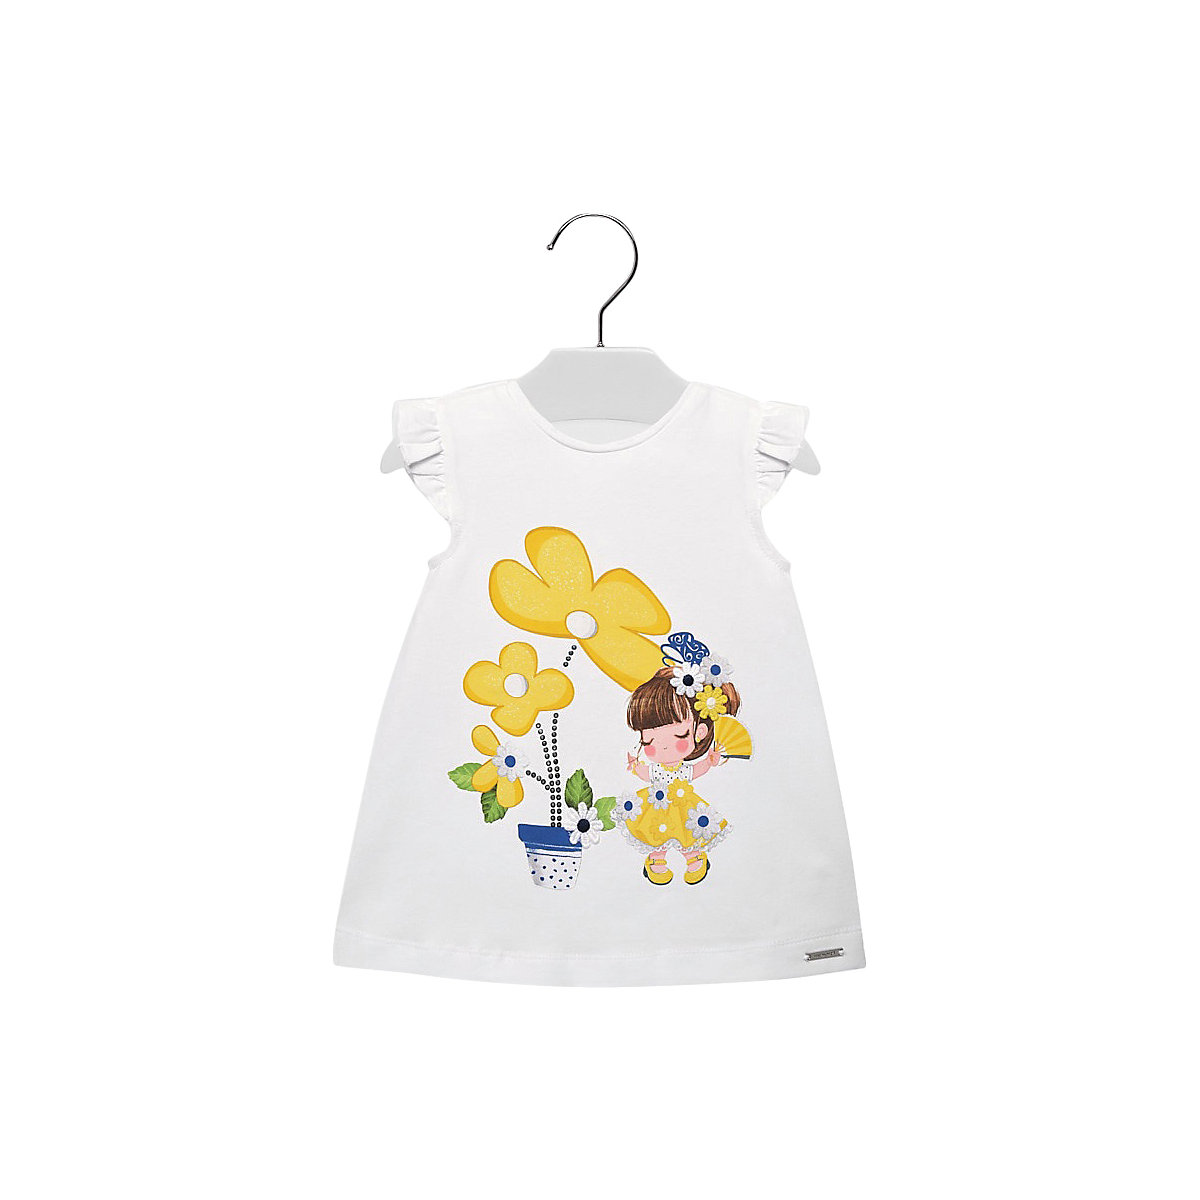 MAYORAL Dresses 10687154 Girl Children fitted pleated skirt Yellow Cotton Casual Floral Knee-Length Sleeveless Sleeve white tube top and floral print pleated hem skirt co ord